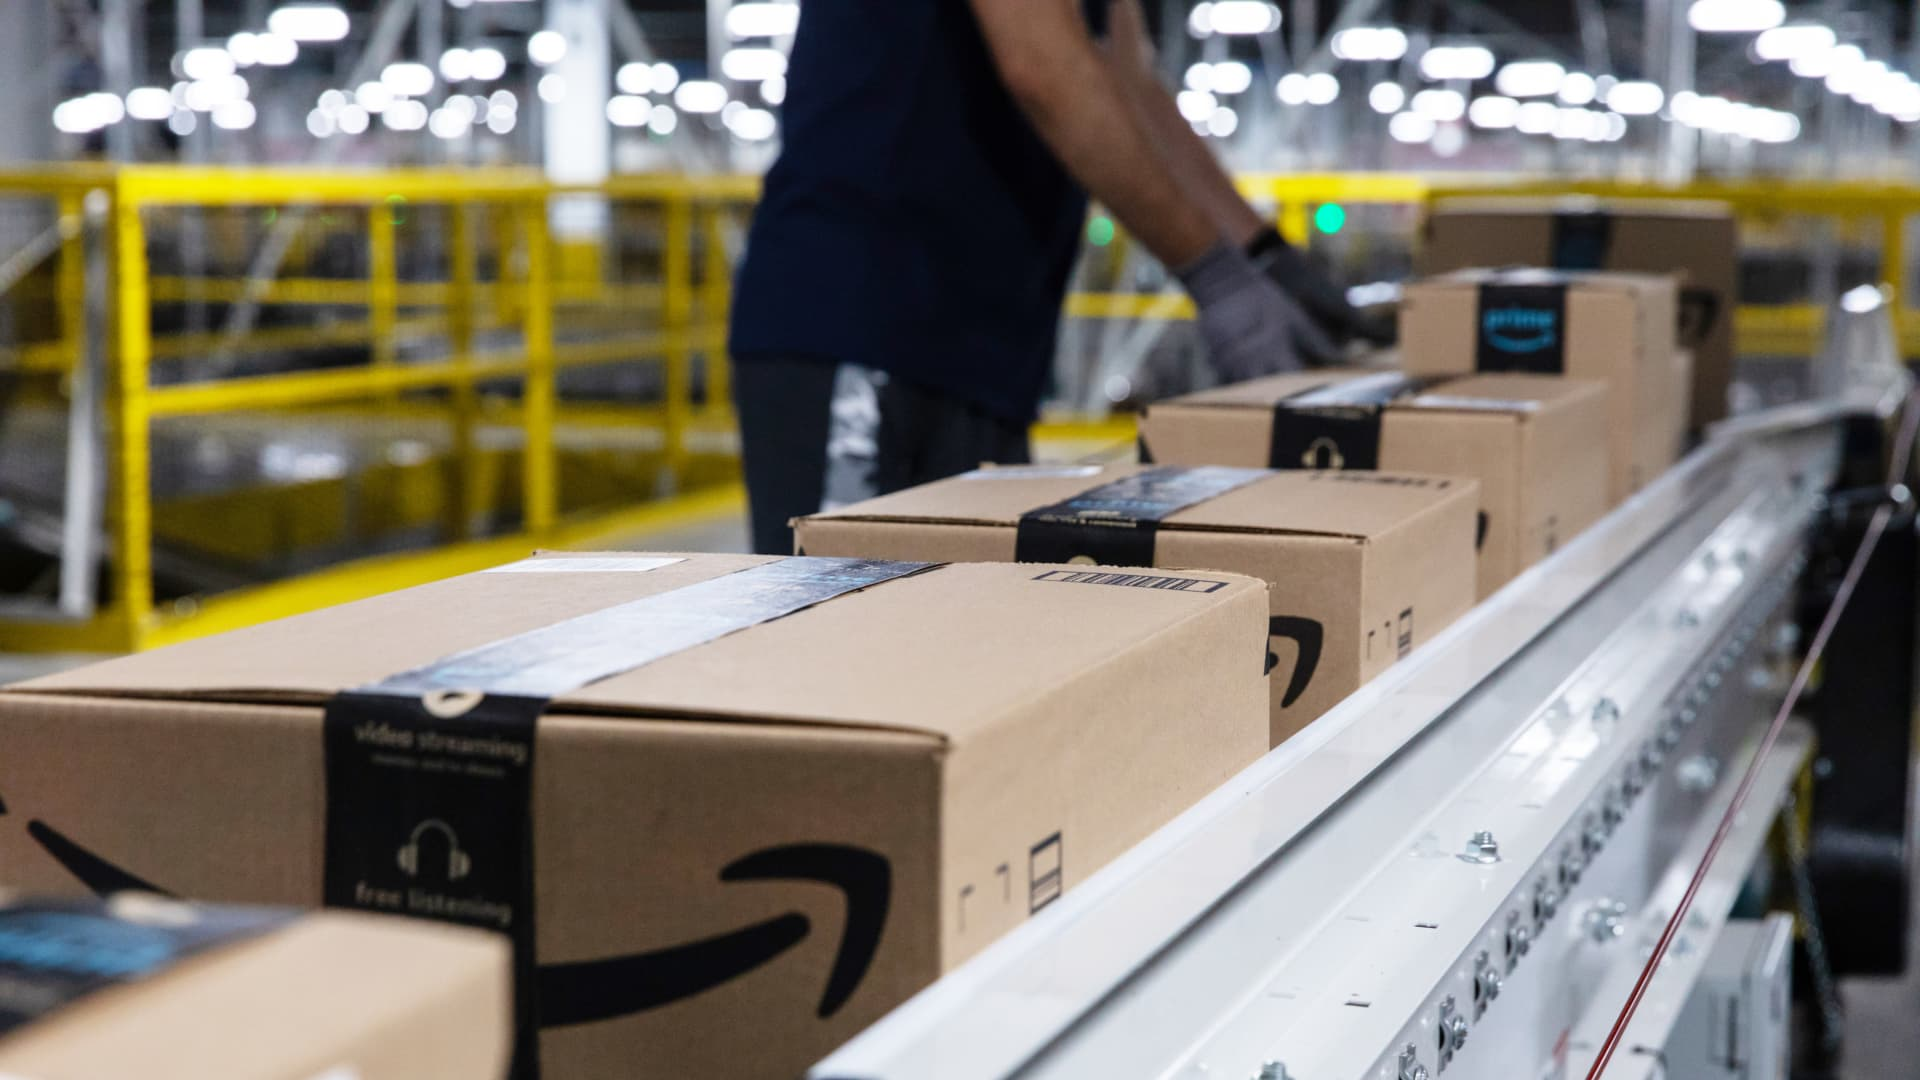 Boxes move along a conveyor belt at an Amazon fulfillment center on Prime Day in Raleigh, North Carolina, U.S., on Monday, June 21, 2021.